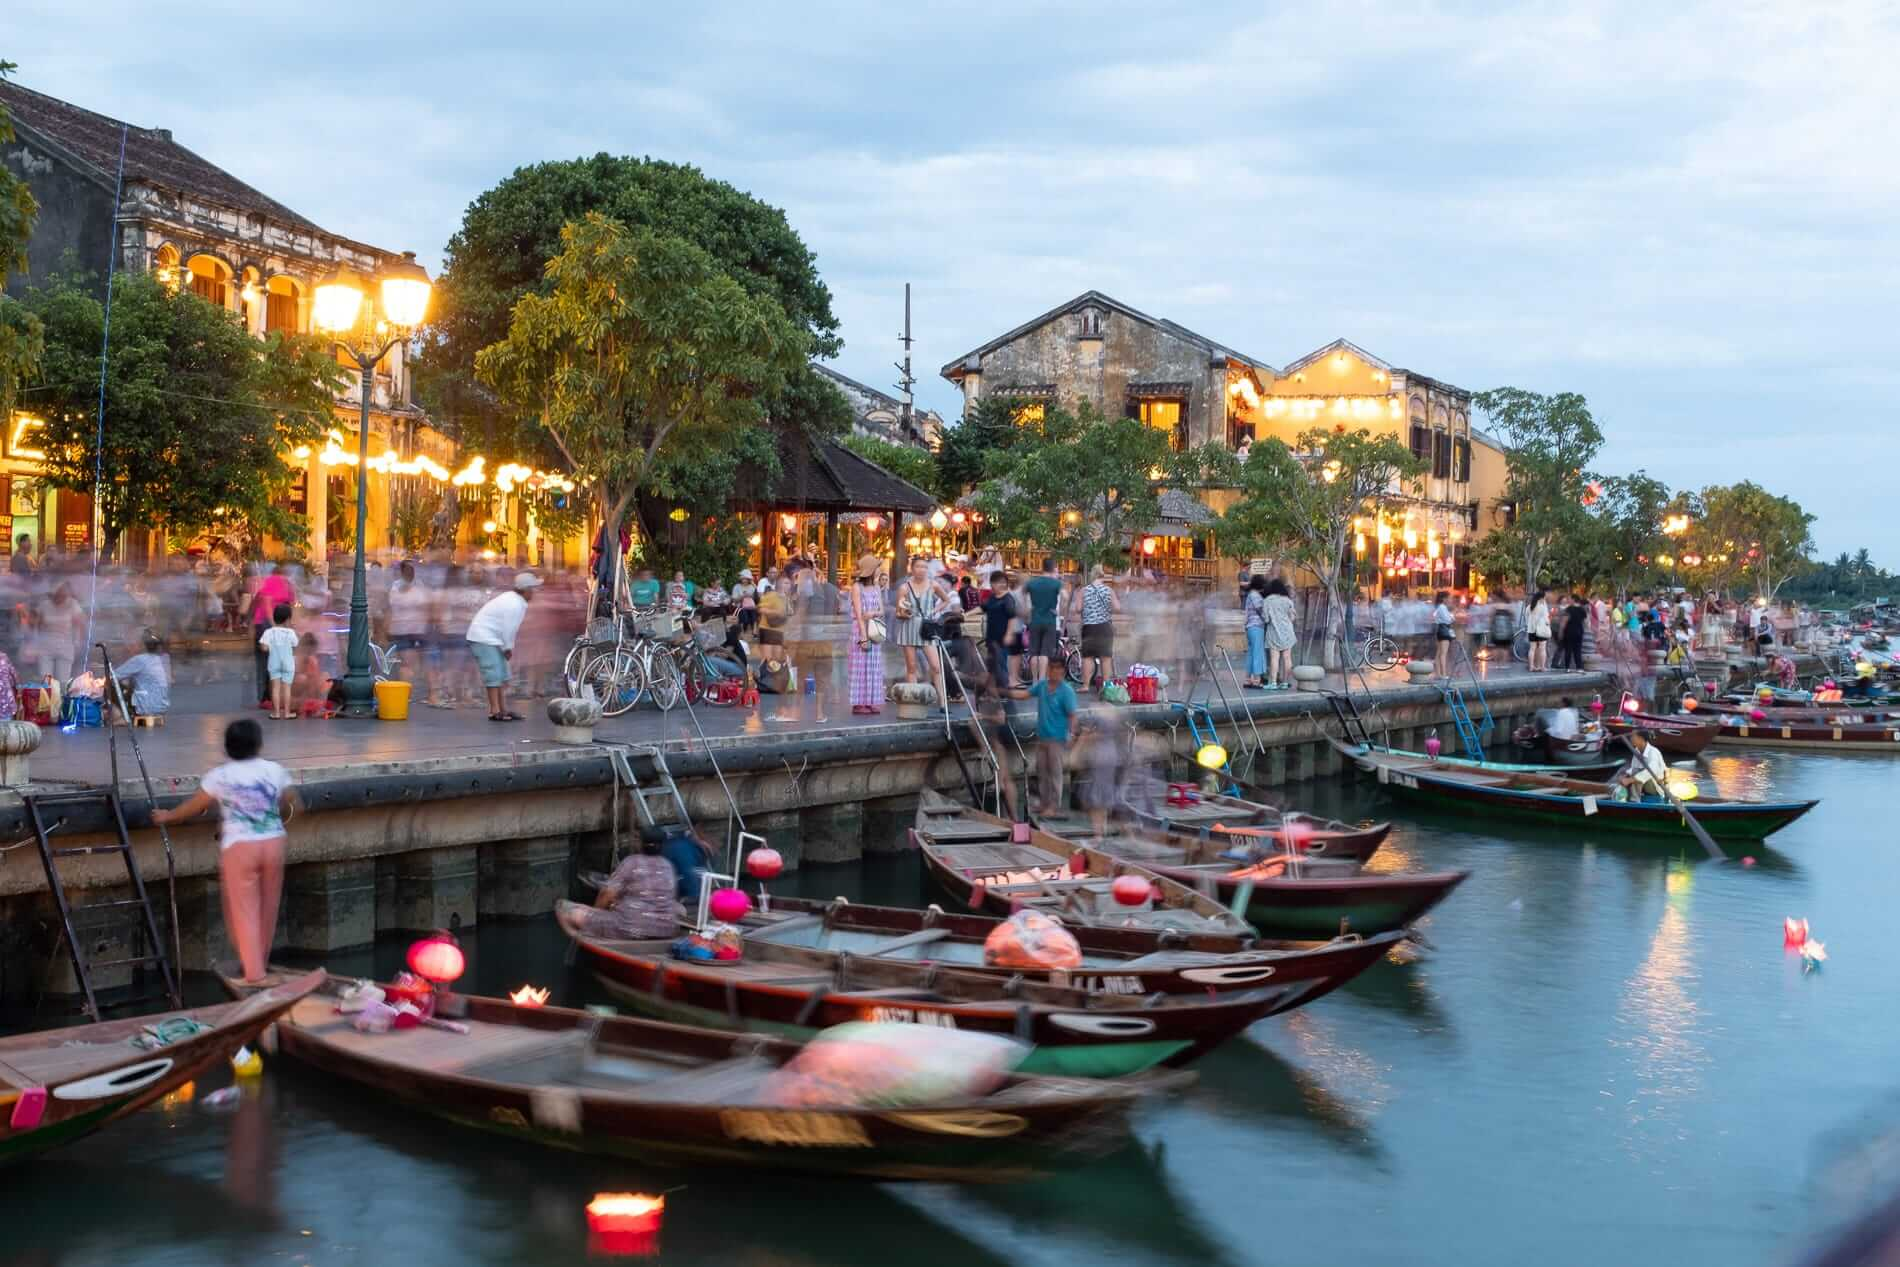 Visitors and boat operators at dusk in Hoi An